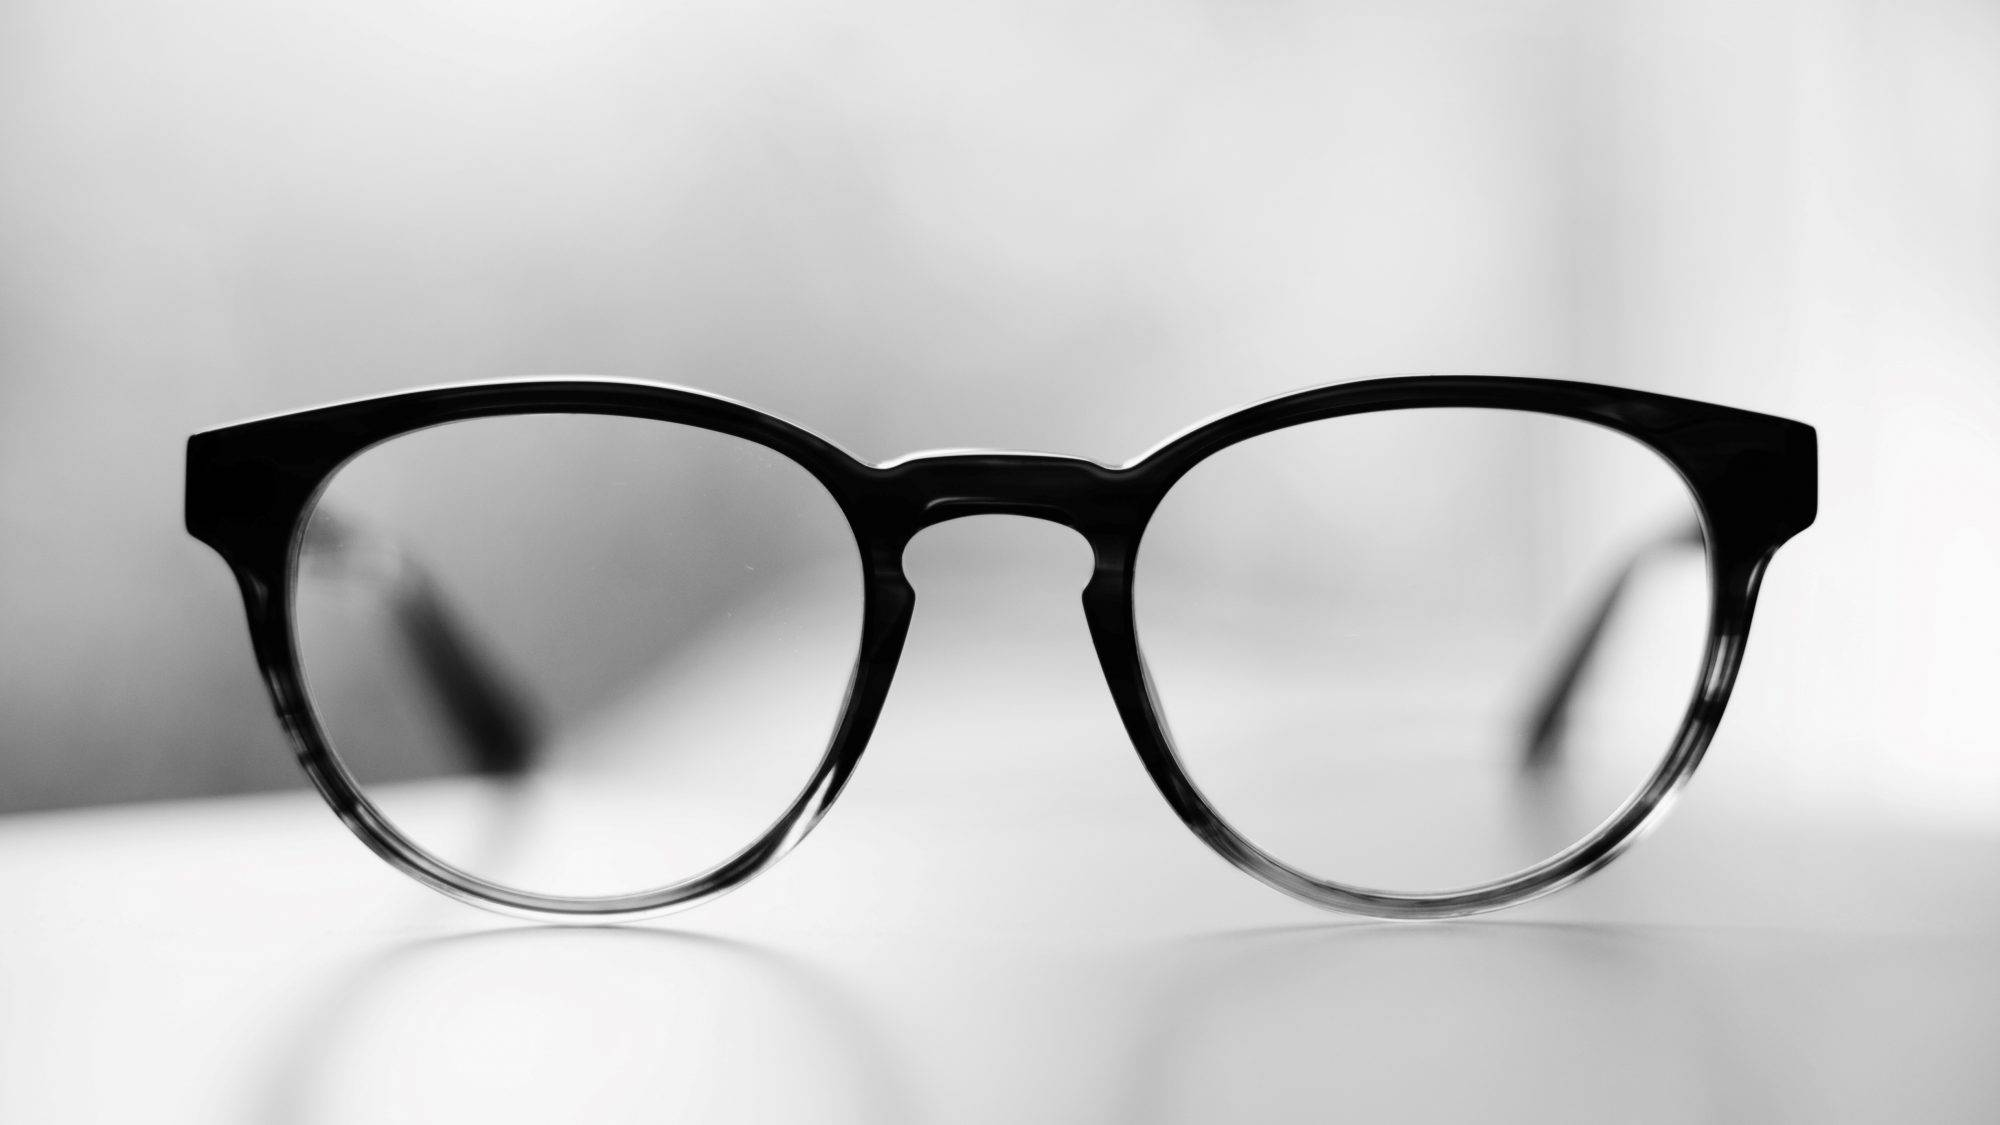 eyeglasses-on-table-e1531868339405